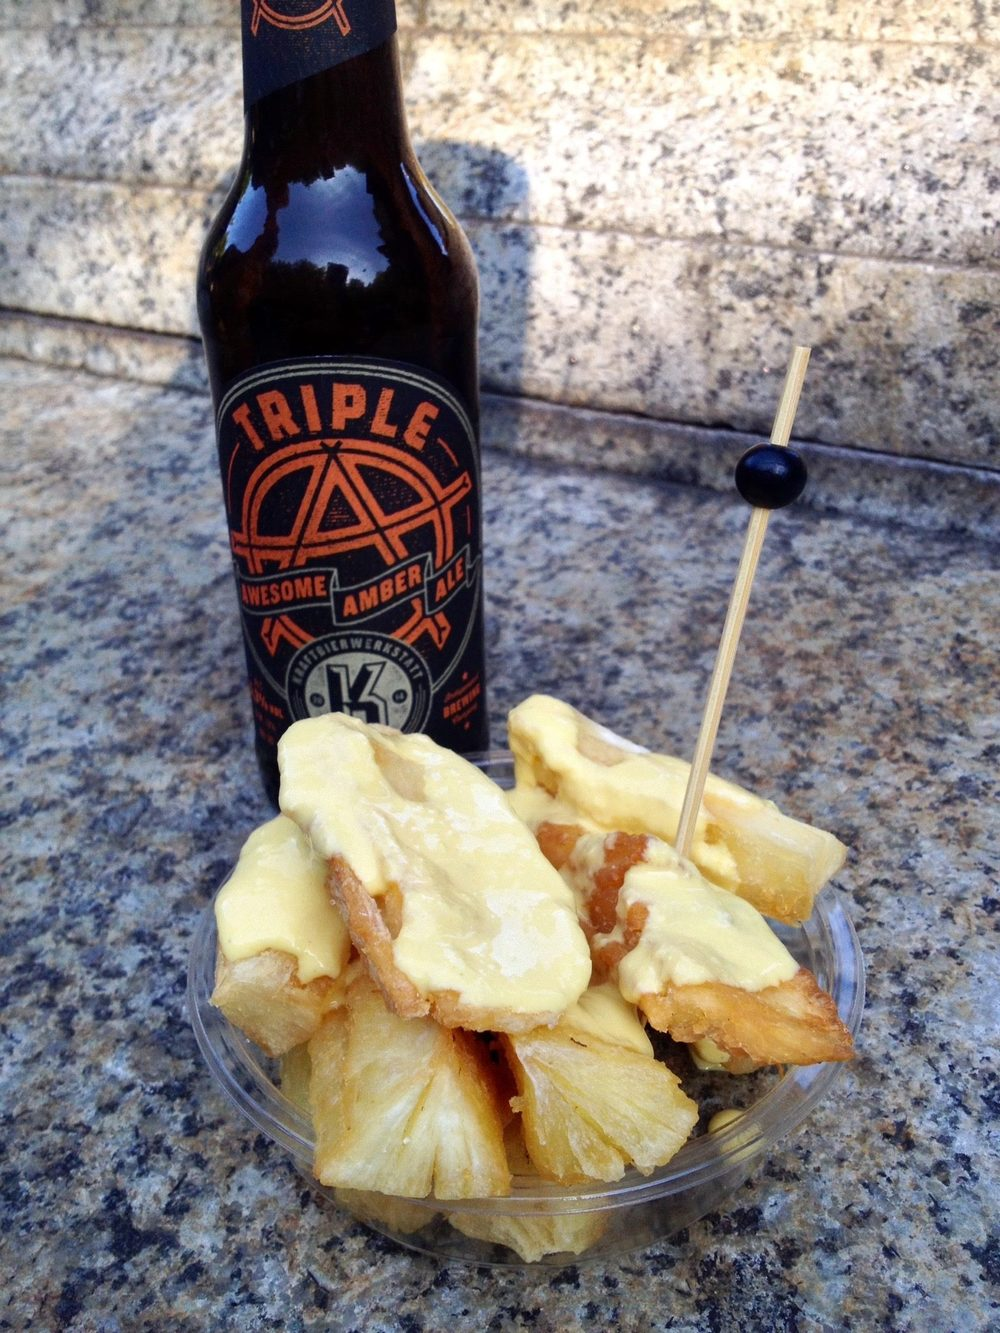 Craft beer from Böblingen and Manioc fries with pepper sauce from Peruvian Brothers at the Street Food Market Stuttgart on Thursdays